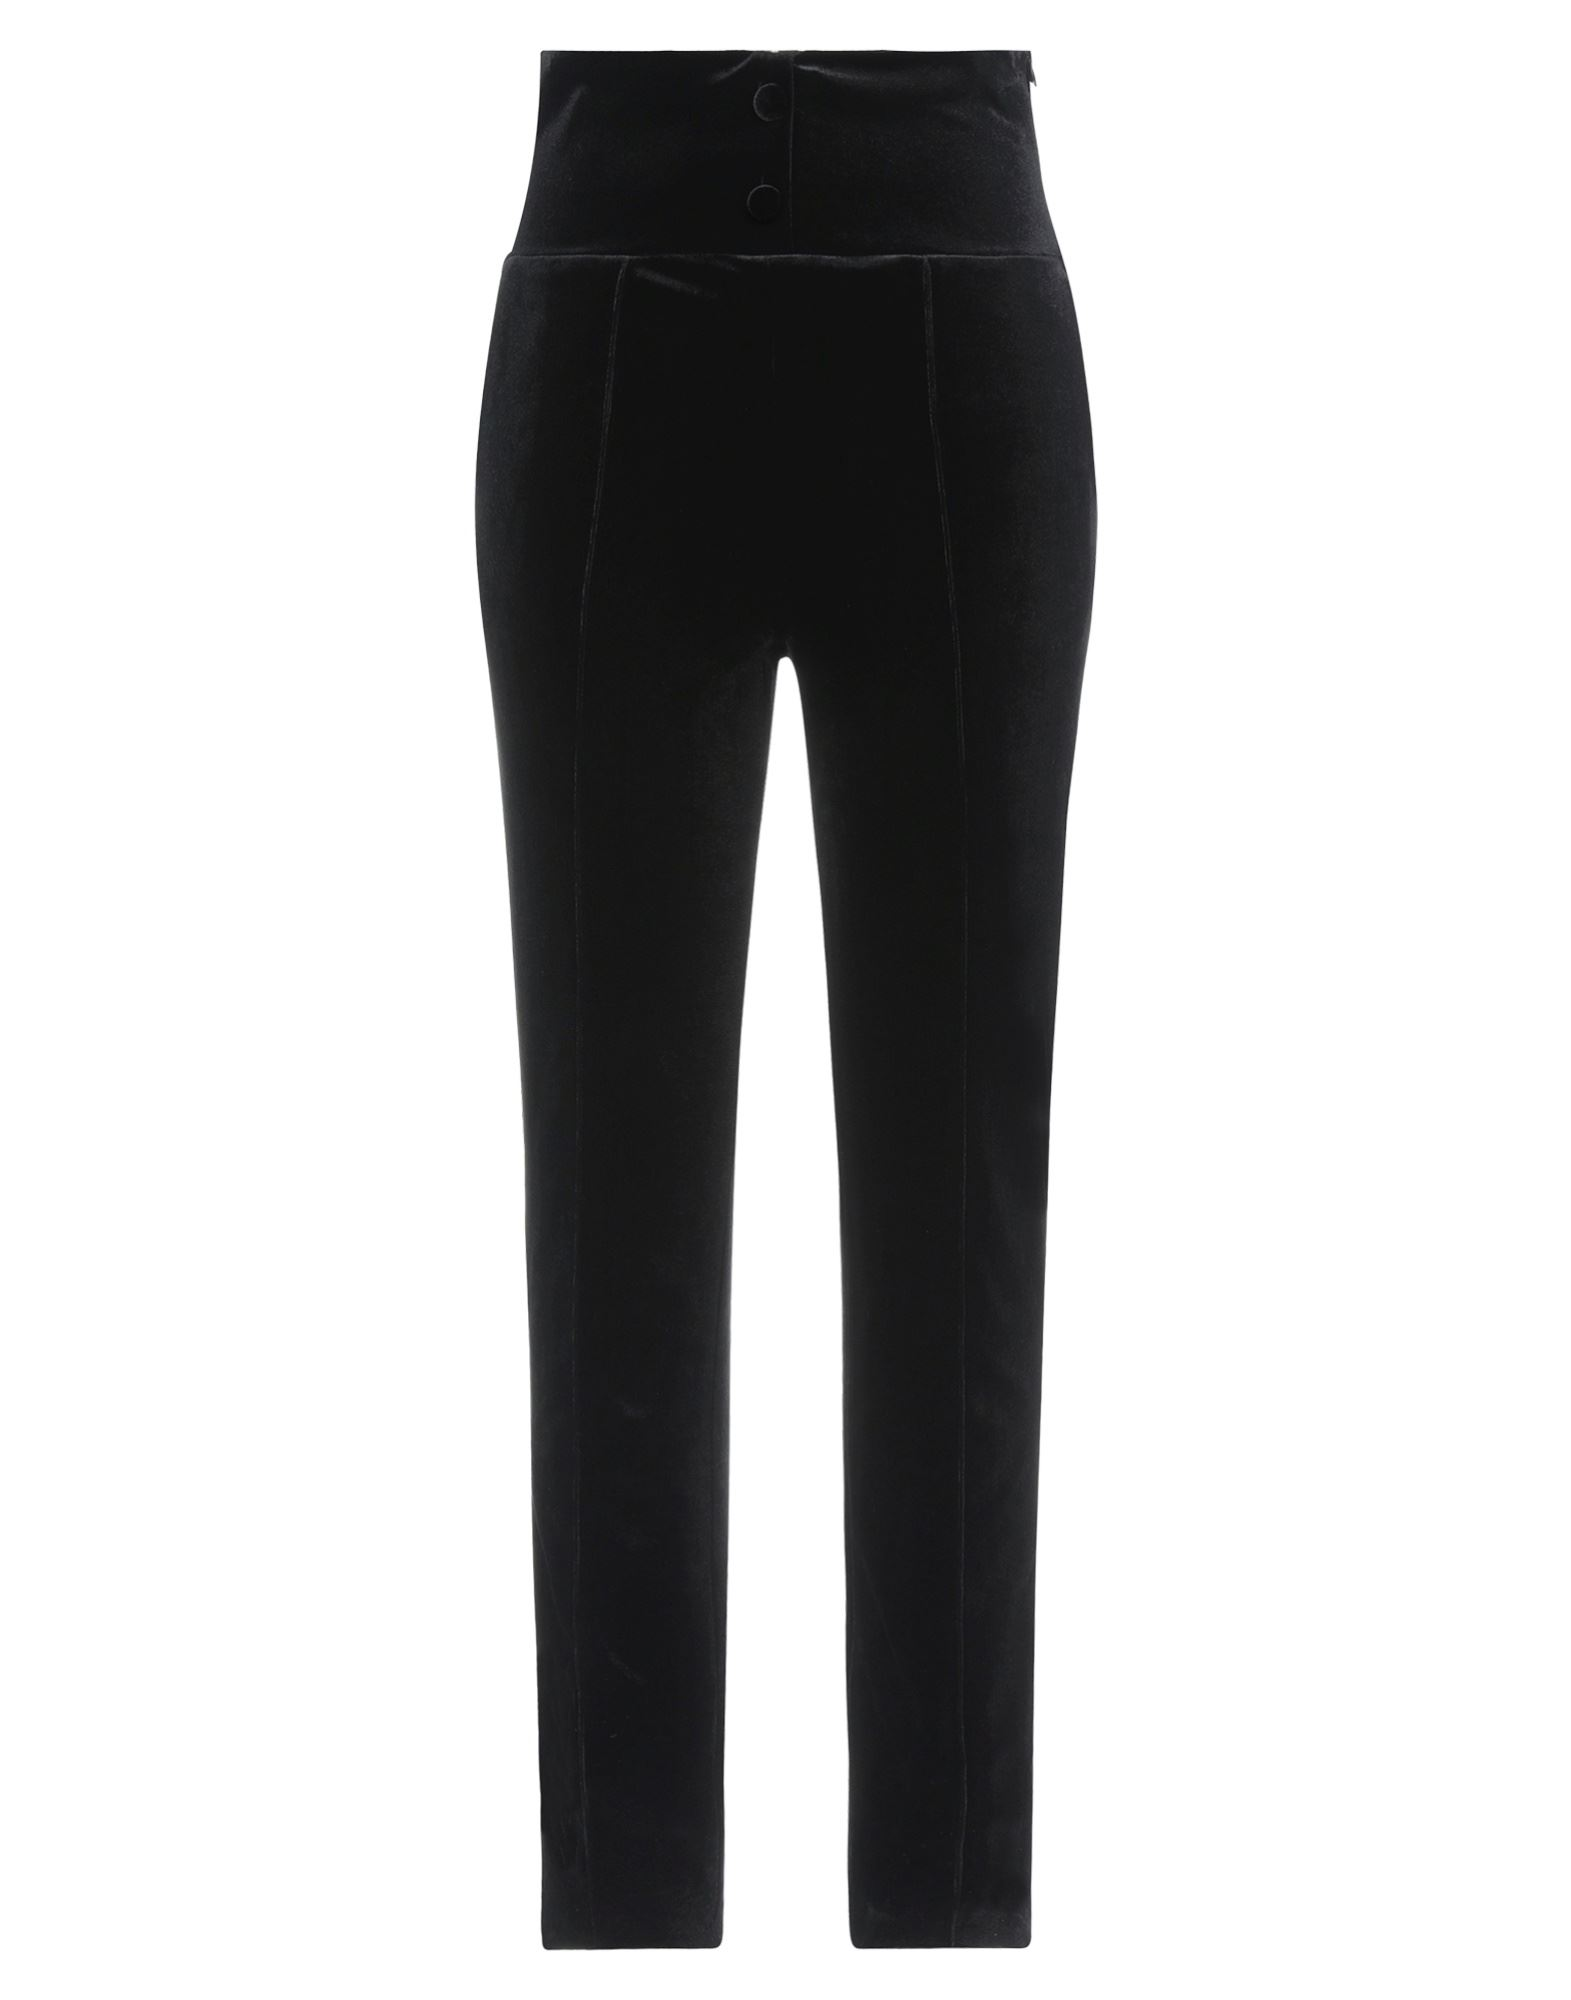 Actualee Casual Pants In Black